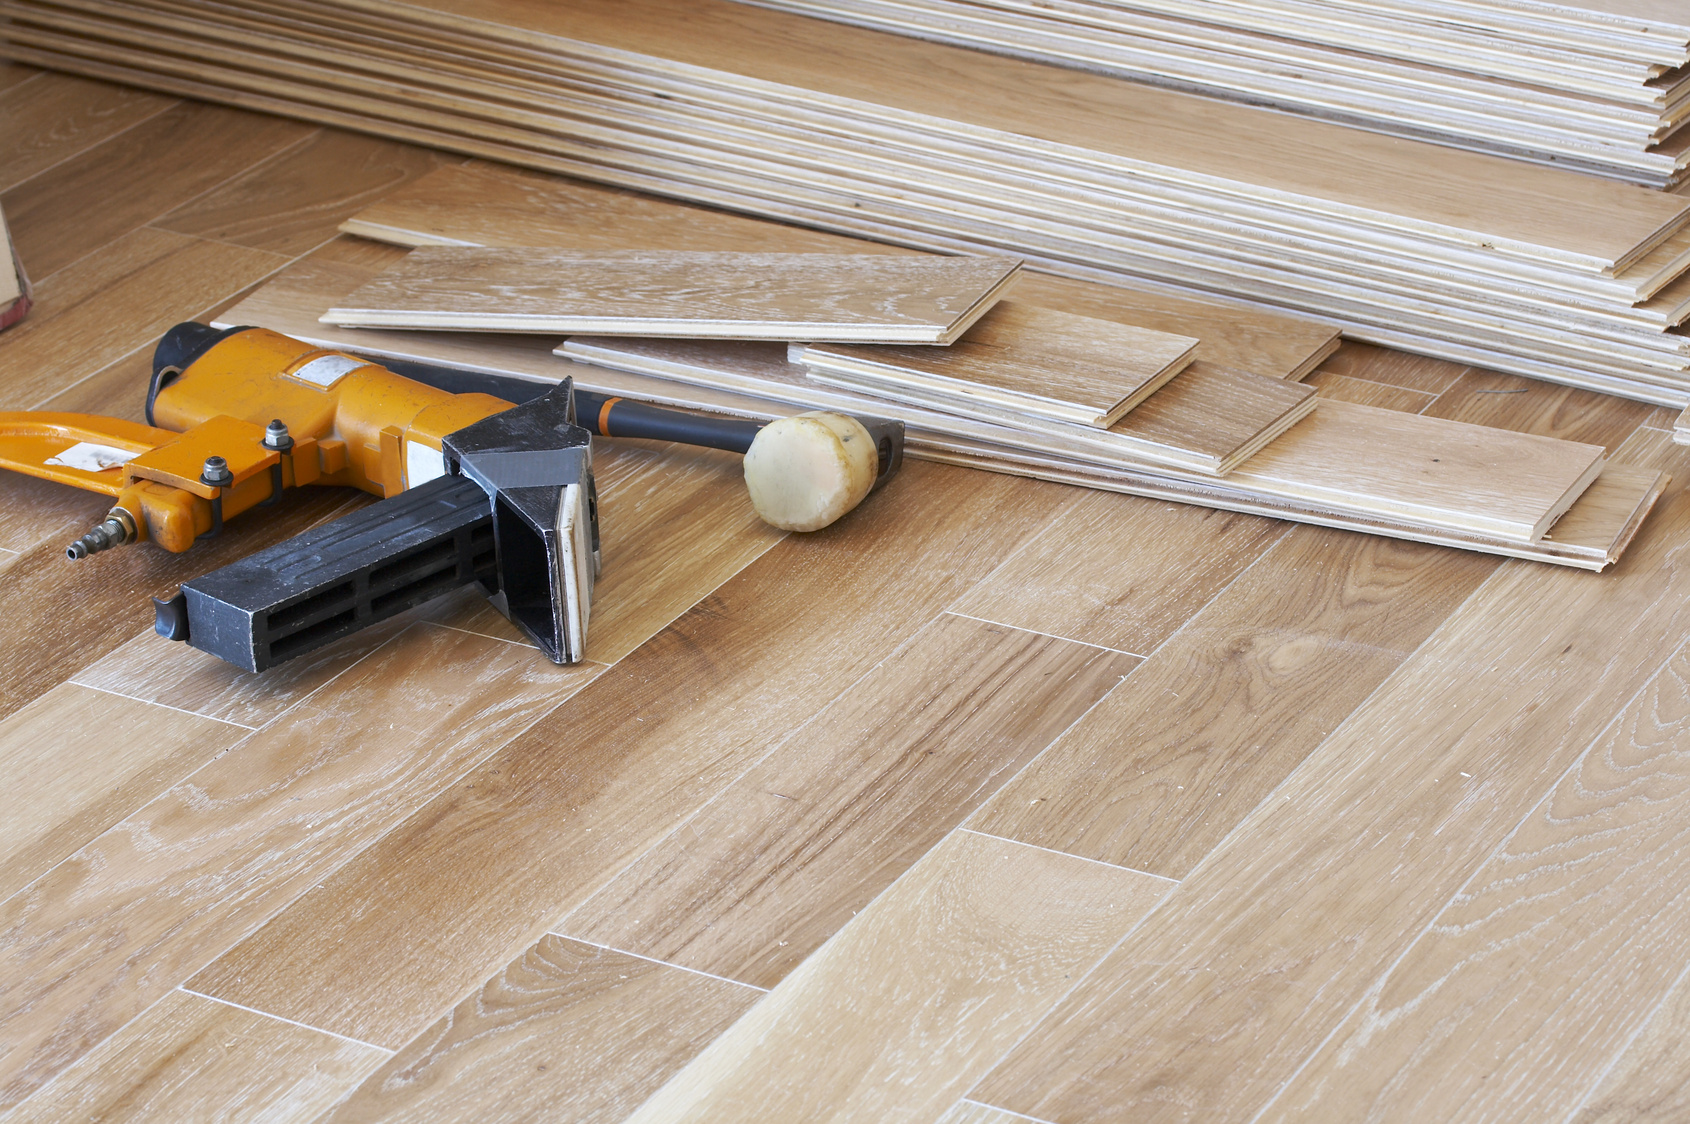 Freds Flooring Services - 2460 Southgate Blvd, Murfreesboro, TN 37128